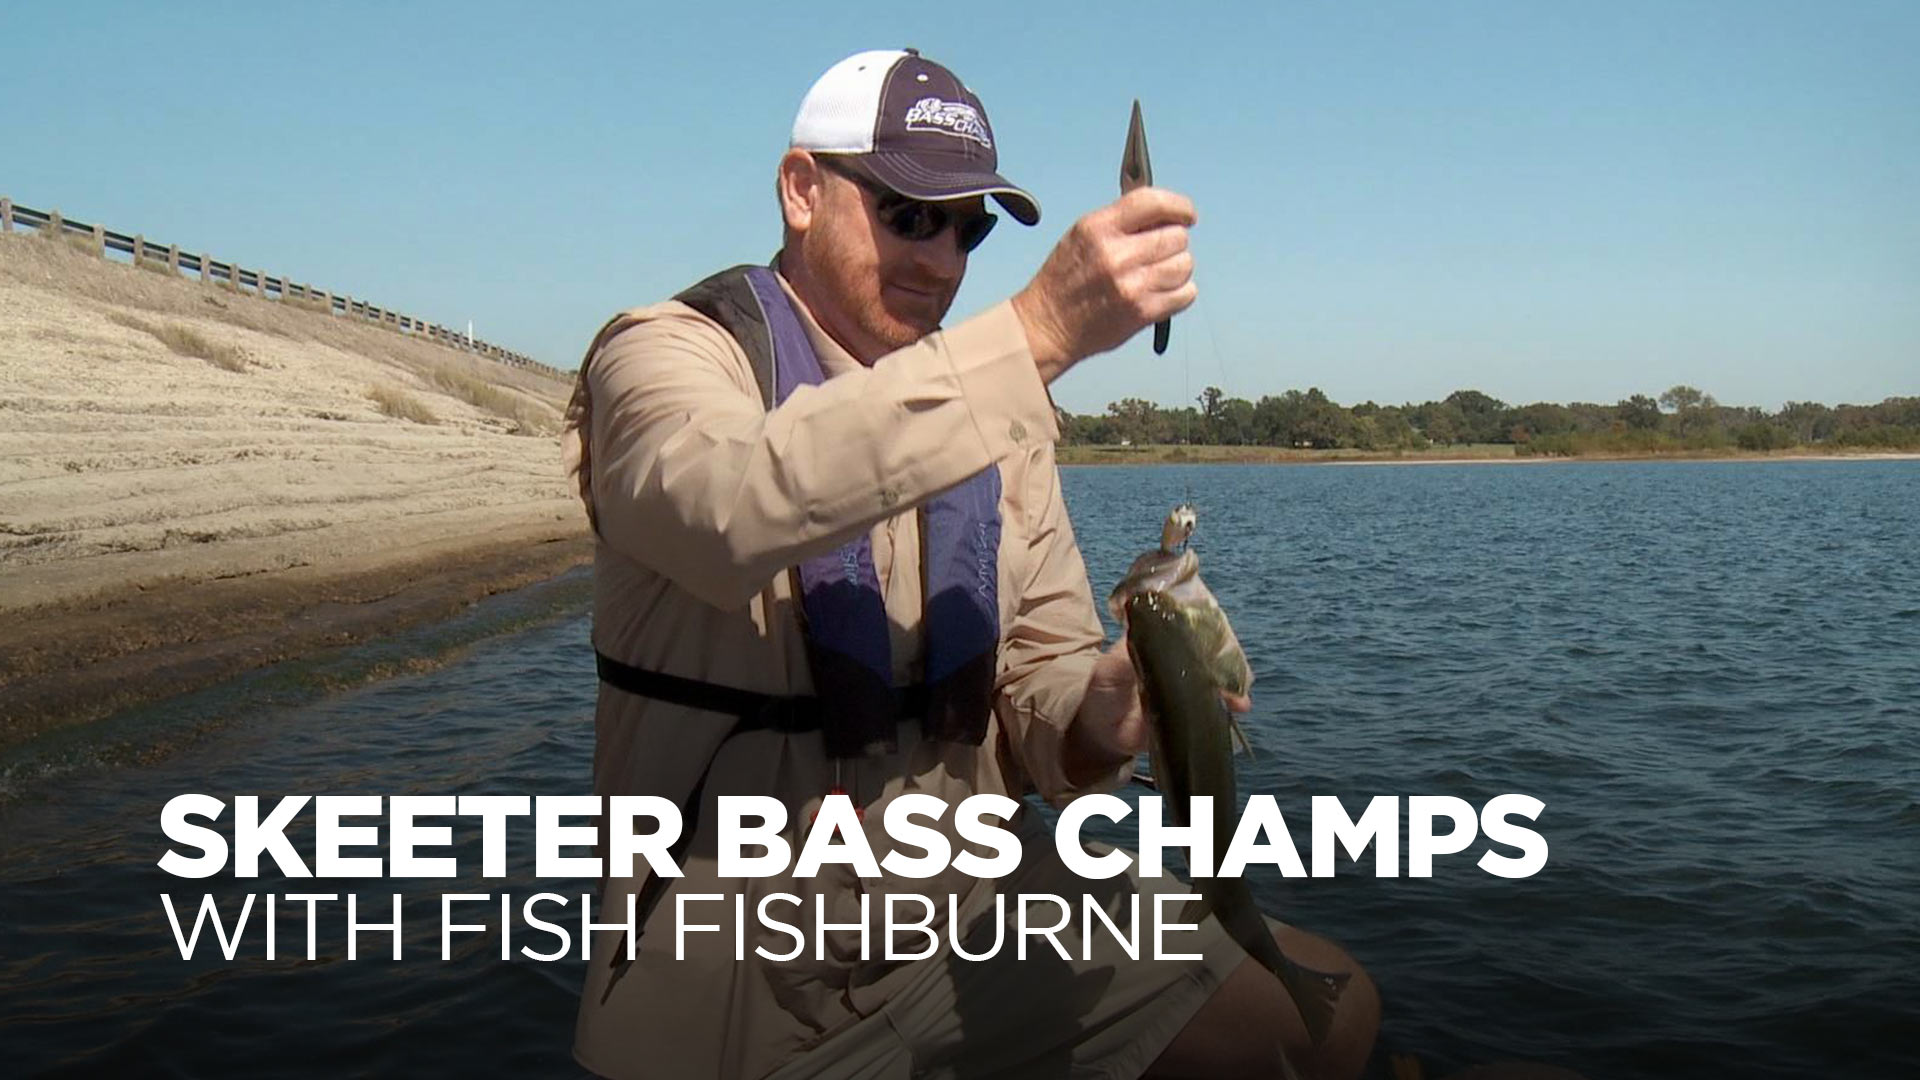 skeeter bass champs - HD 1920×1080